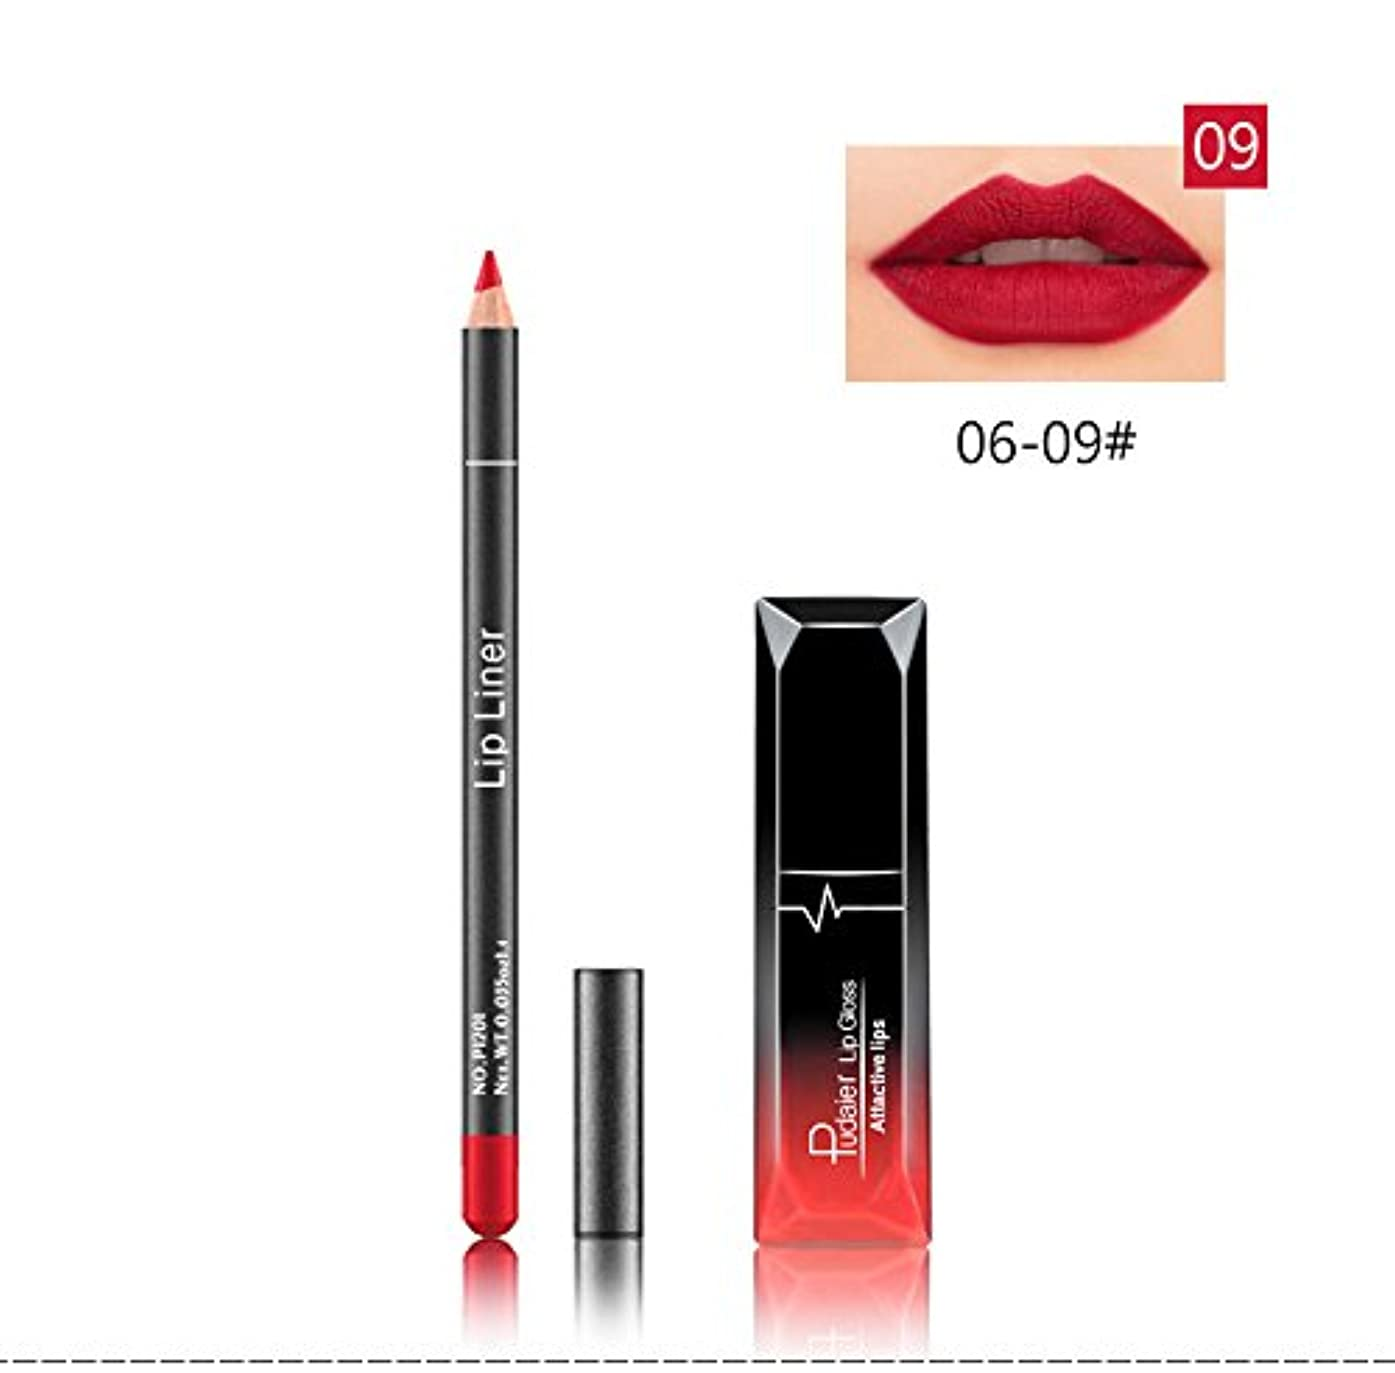 設置ニュースに渡って(09) Pudaier 1pc Matte Liquid Lipstick Cosmetic Lip Kit+ 1 Pc Nude Lip Liner Pencil MakeUp Set Waterproof Long Lasting Lipstick Gfit